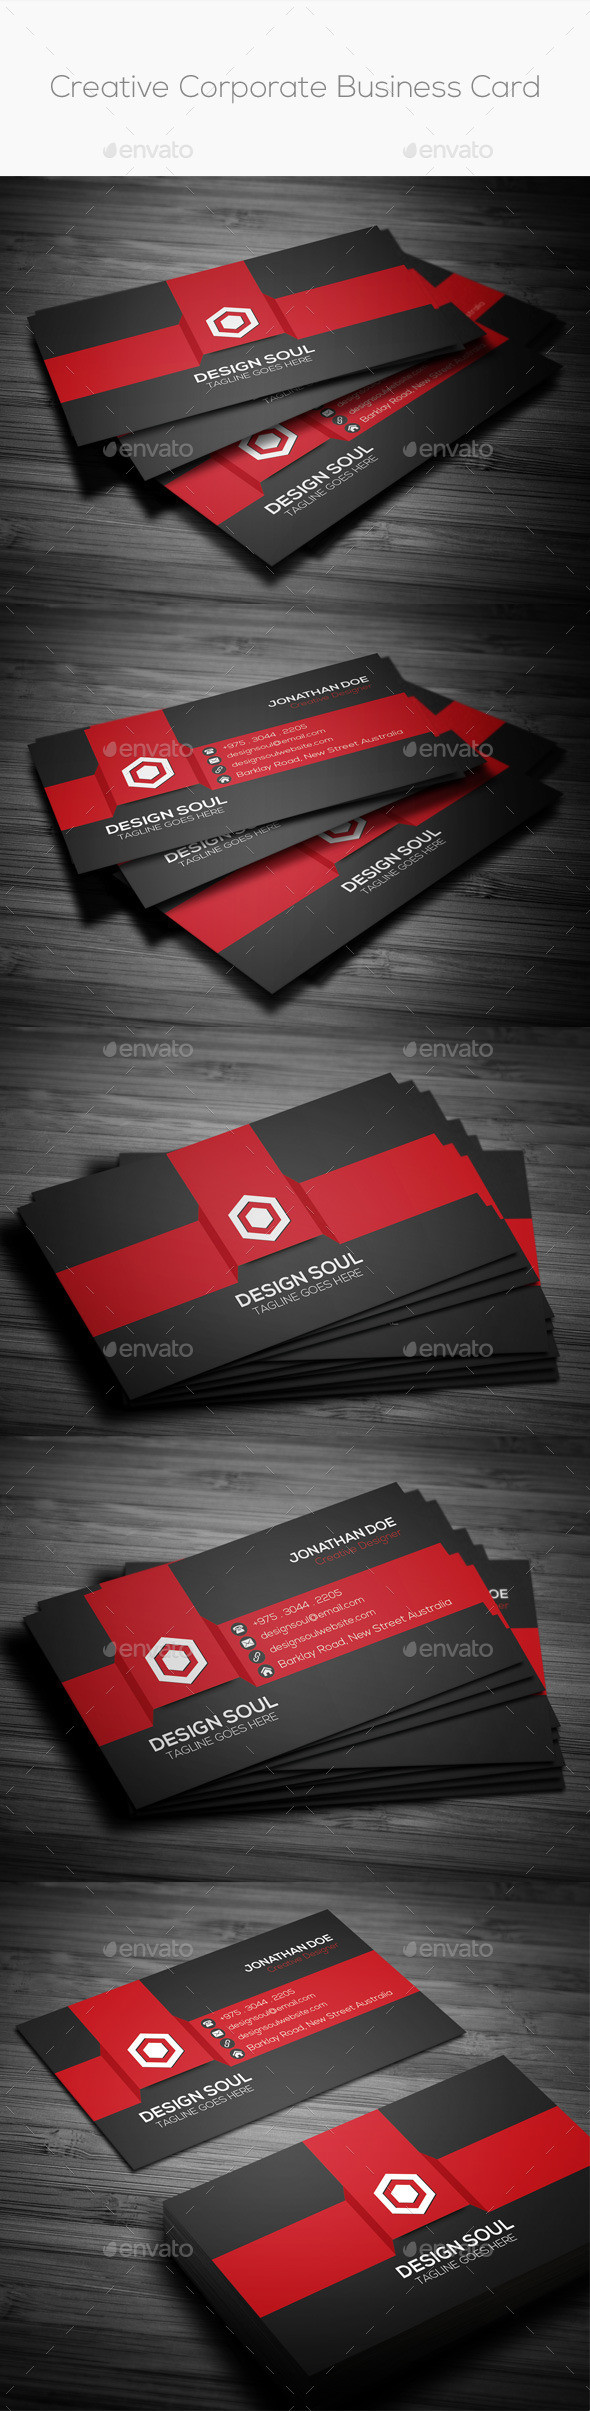 Creative corporate business card preview